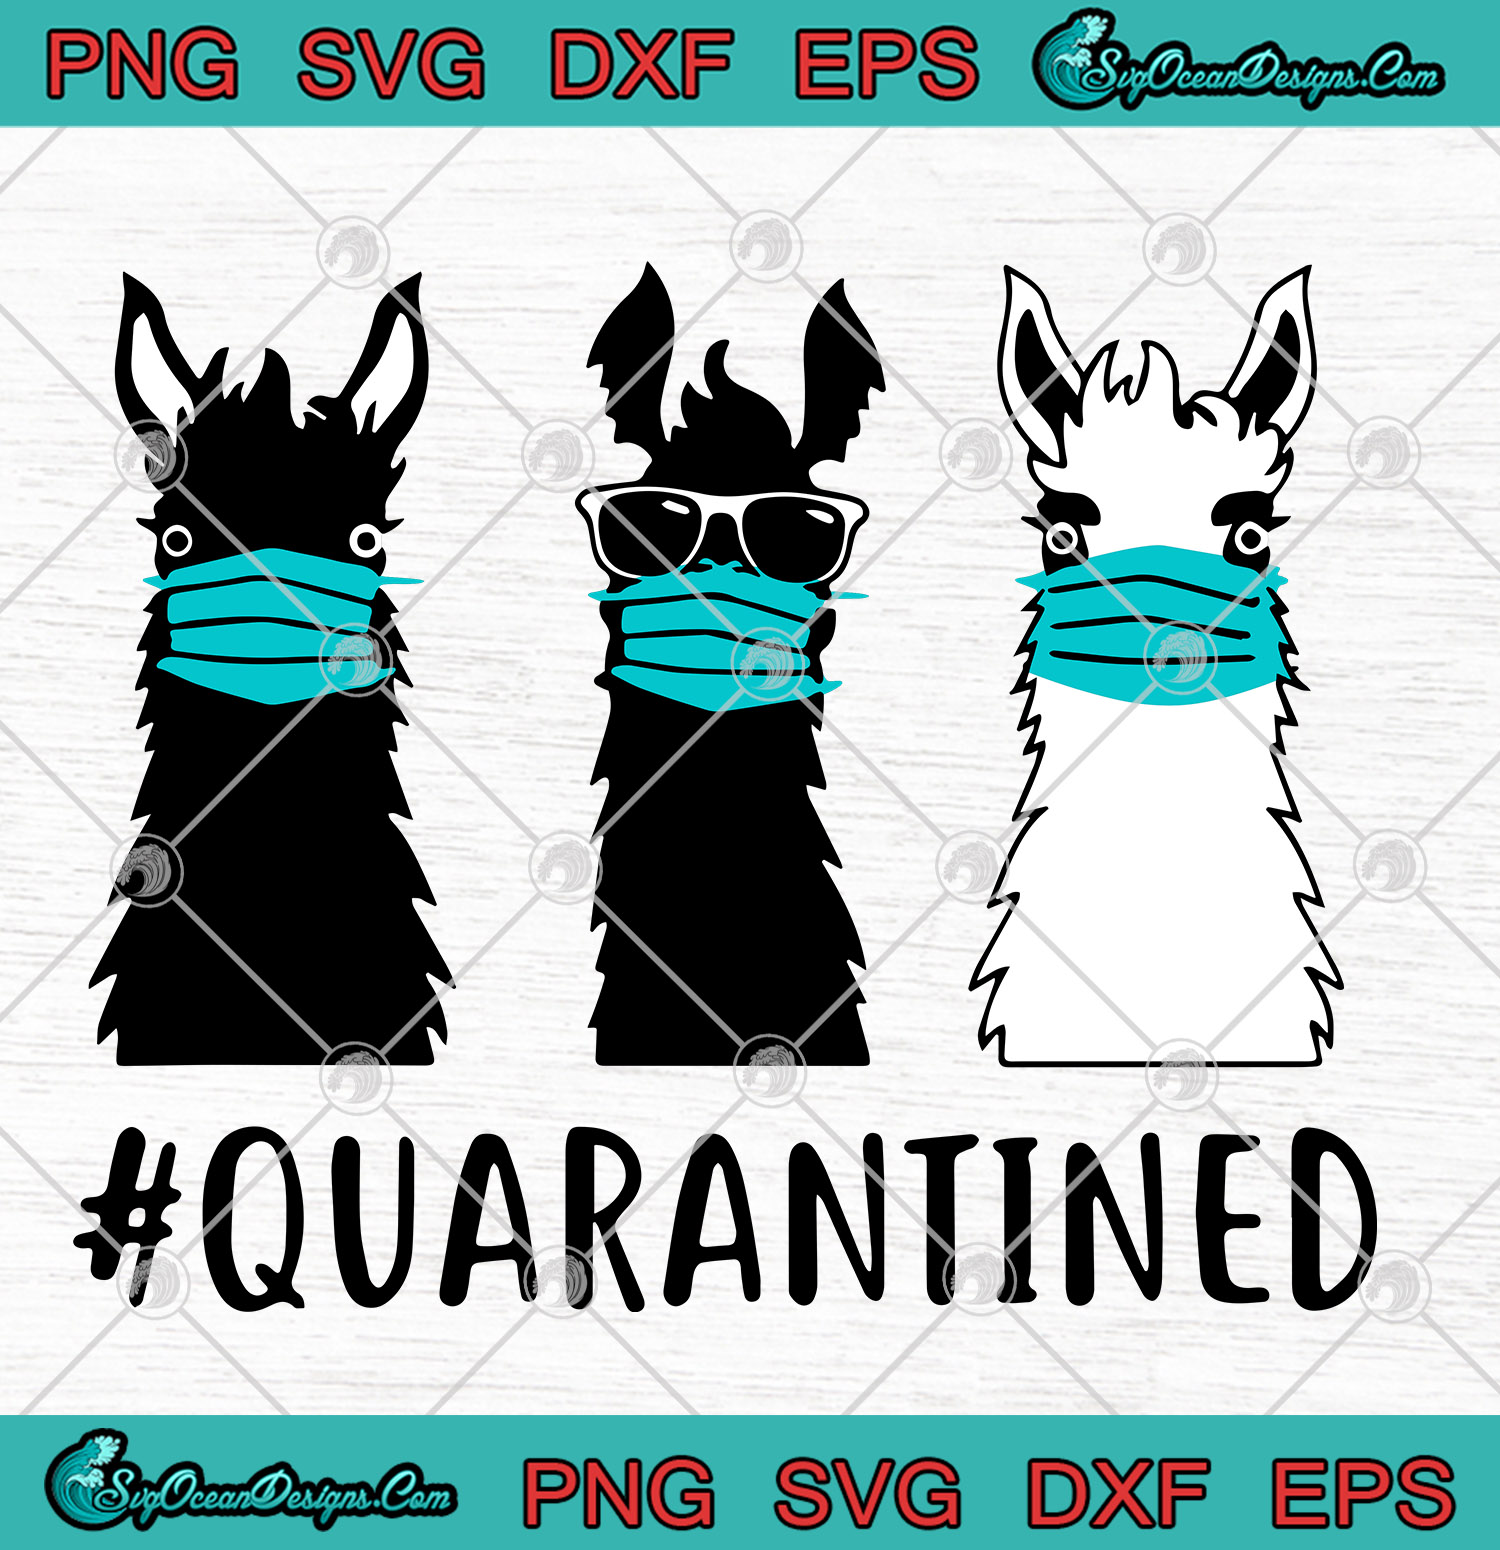 Llama Face Mask Quarantined Svg Png Eps Dxf Covid 19 Coronavirus Quarantine 2020 Coronavirus Cutting File Cricut Silhouette Art Designs Digital Download